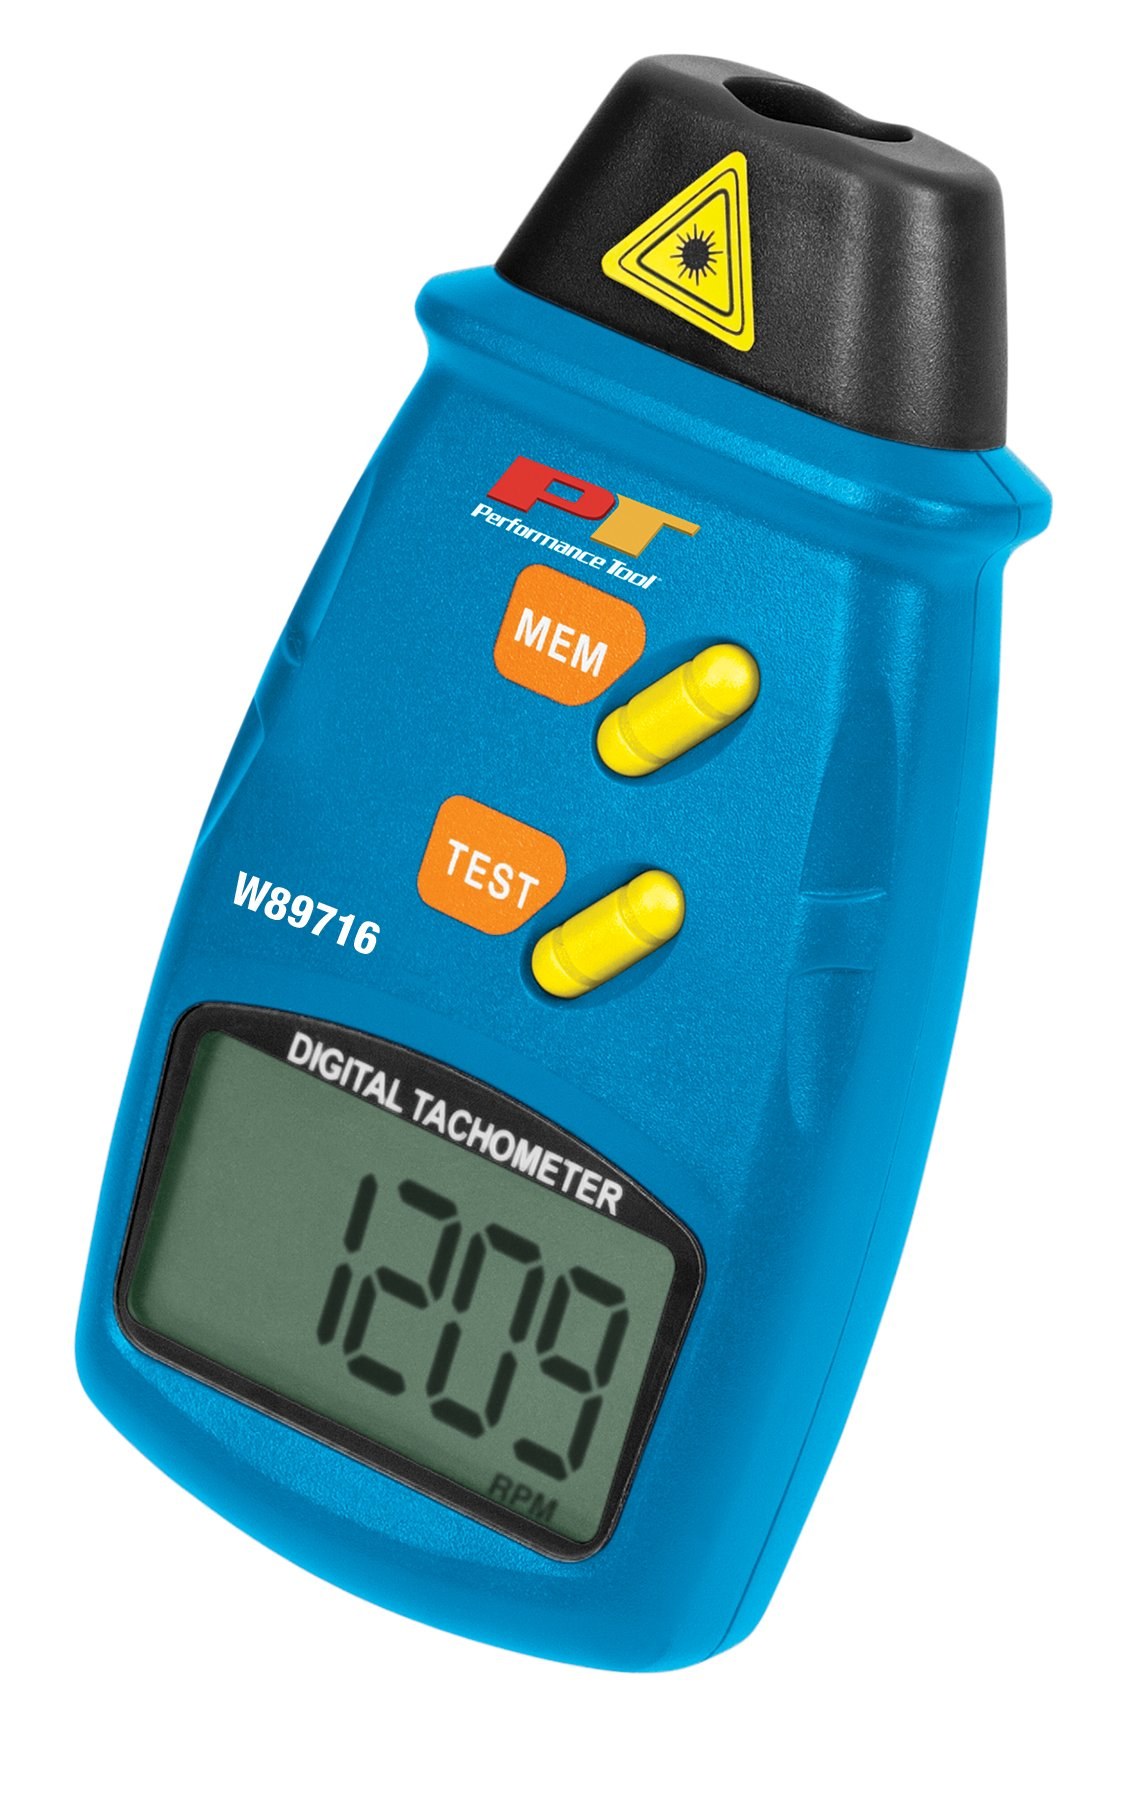 Performance Tool W89719 Professional Digital Laser LCD Tachometer Non-Contact RPM Reader with Auto Zero Adjustment for Min/Max Readings, 1 Pack